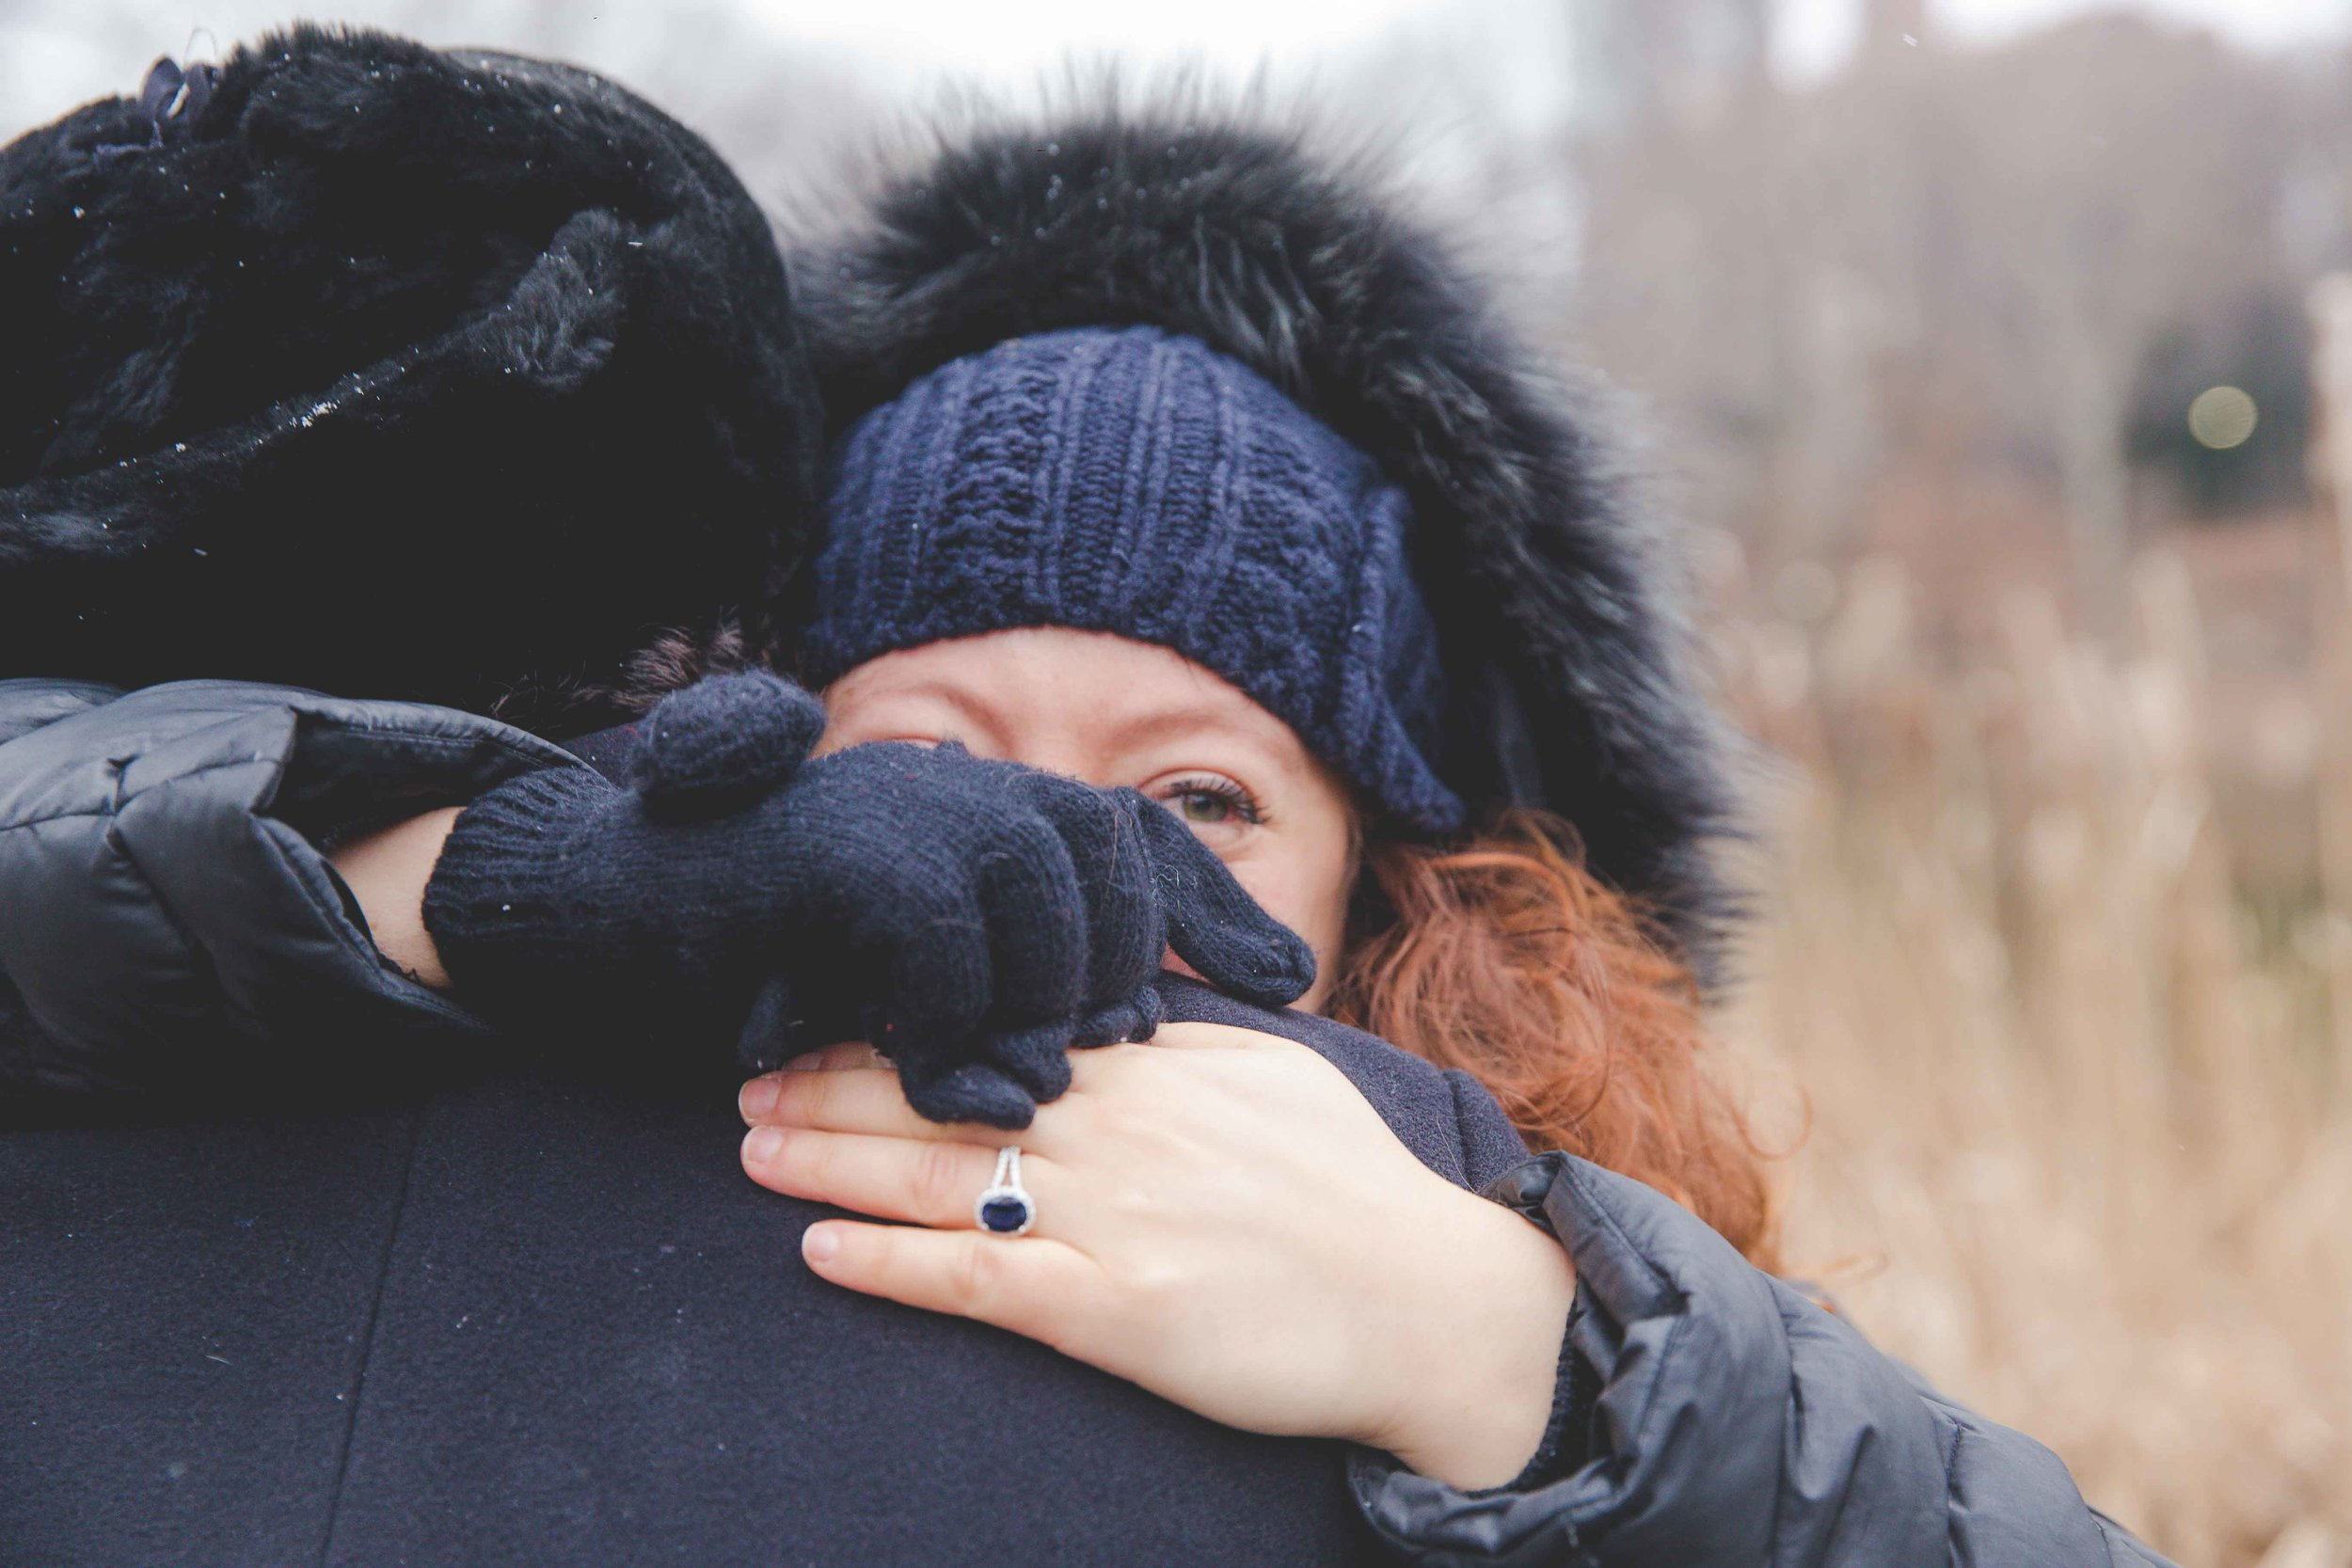 central-park-proposal-engagment-photography-snow-3.jpg